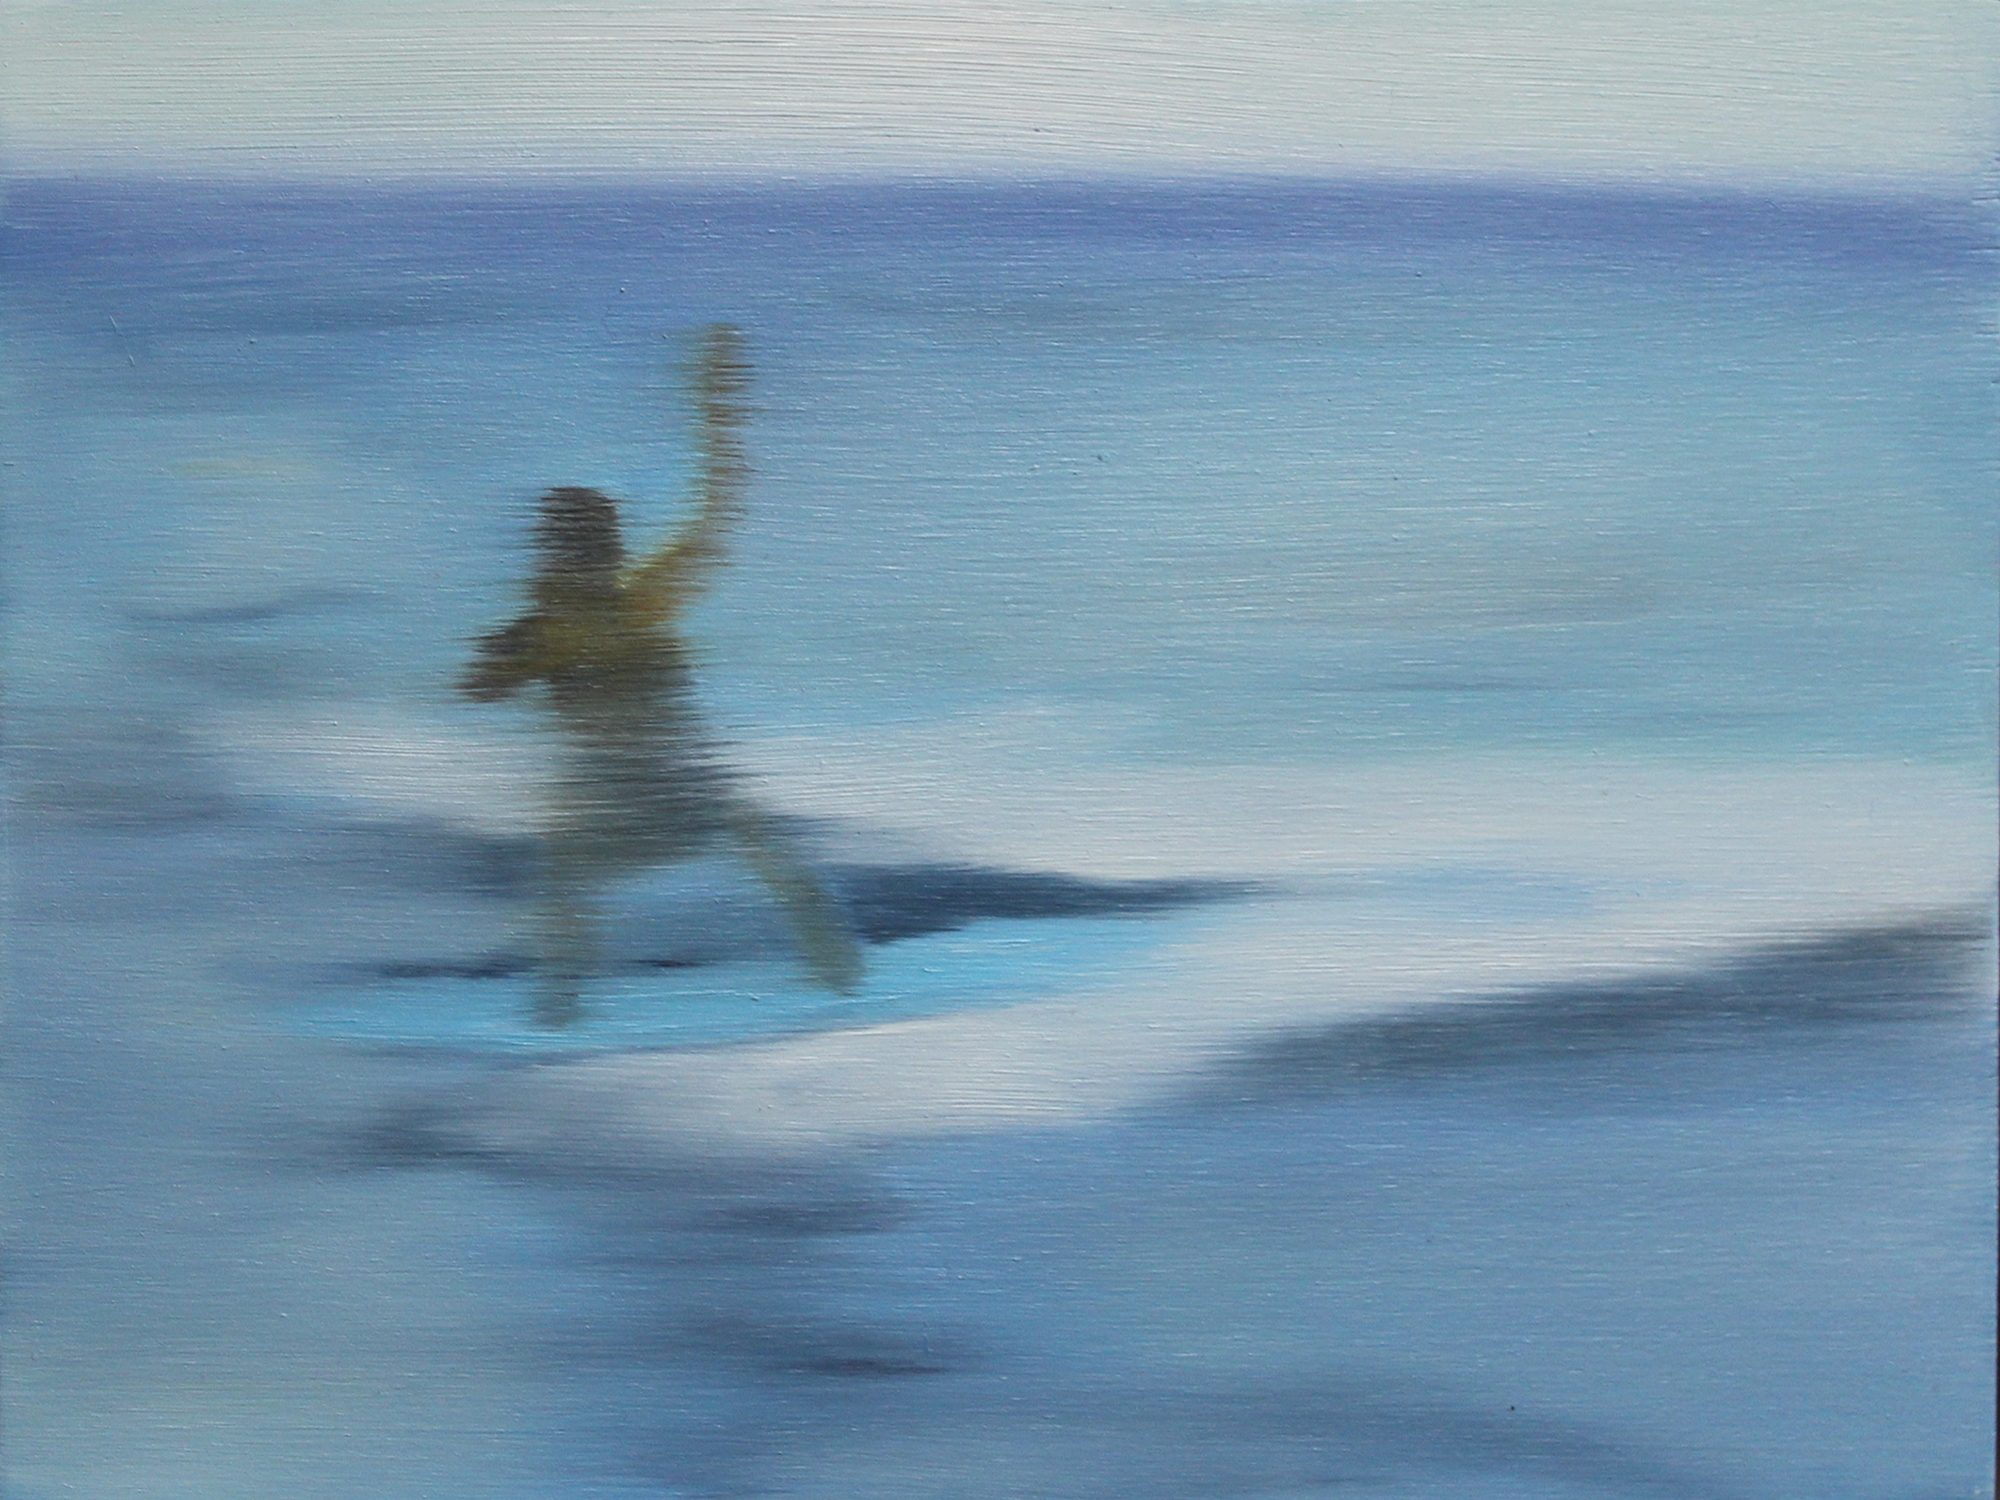 Surfing in Hawaii #7 by Shannon  Dickie